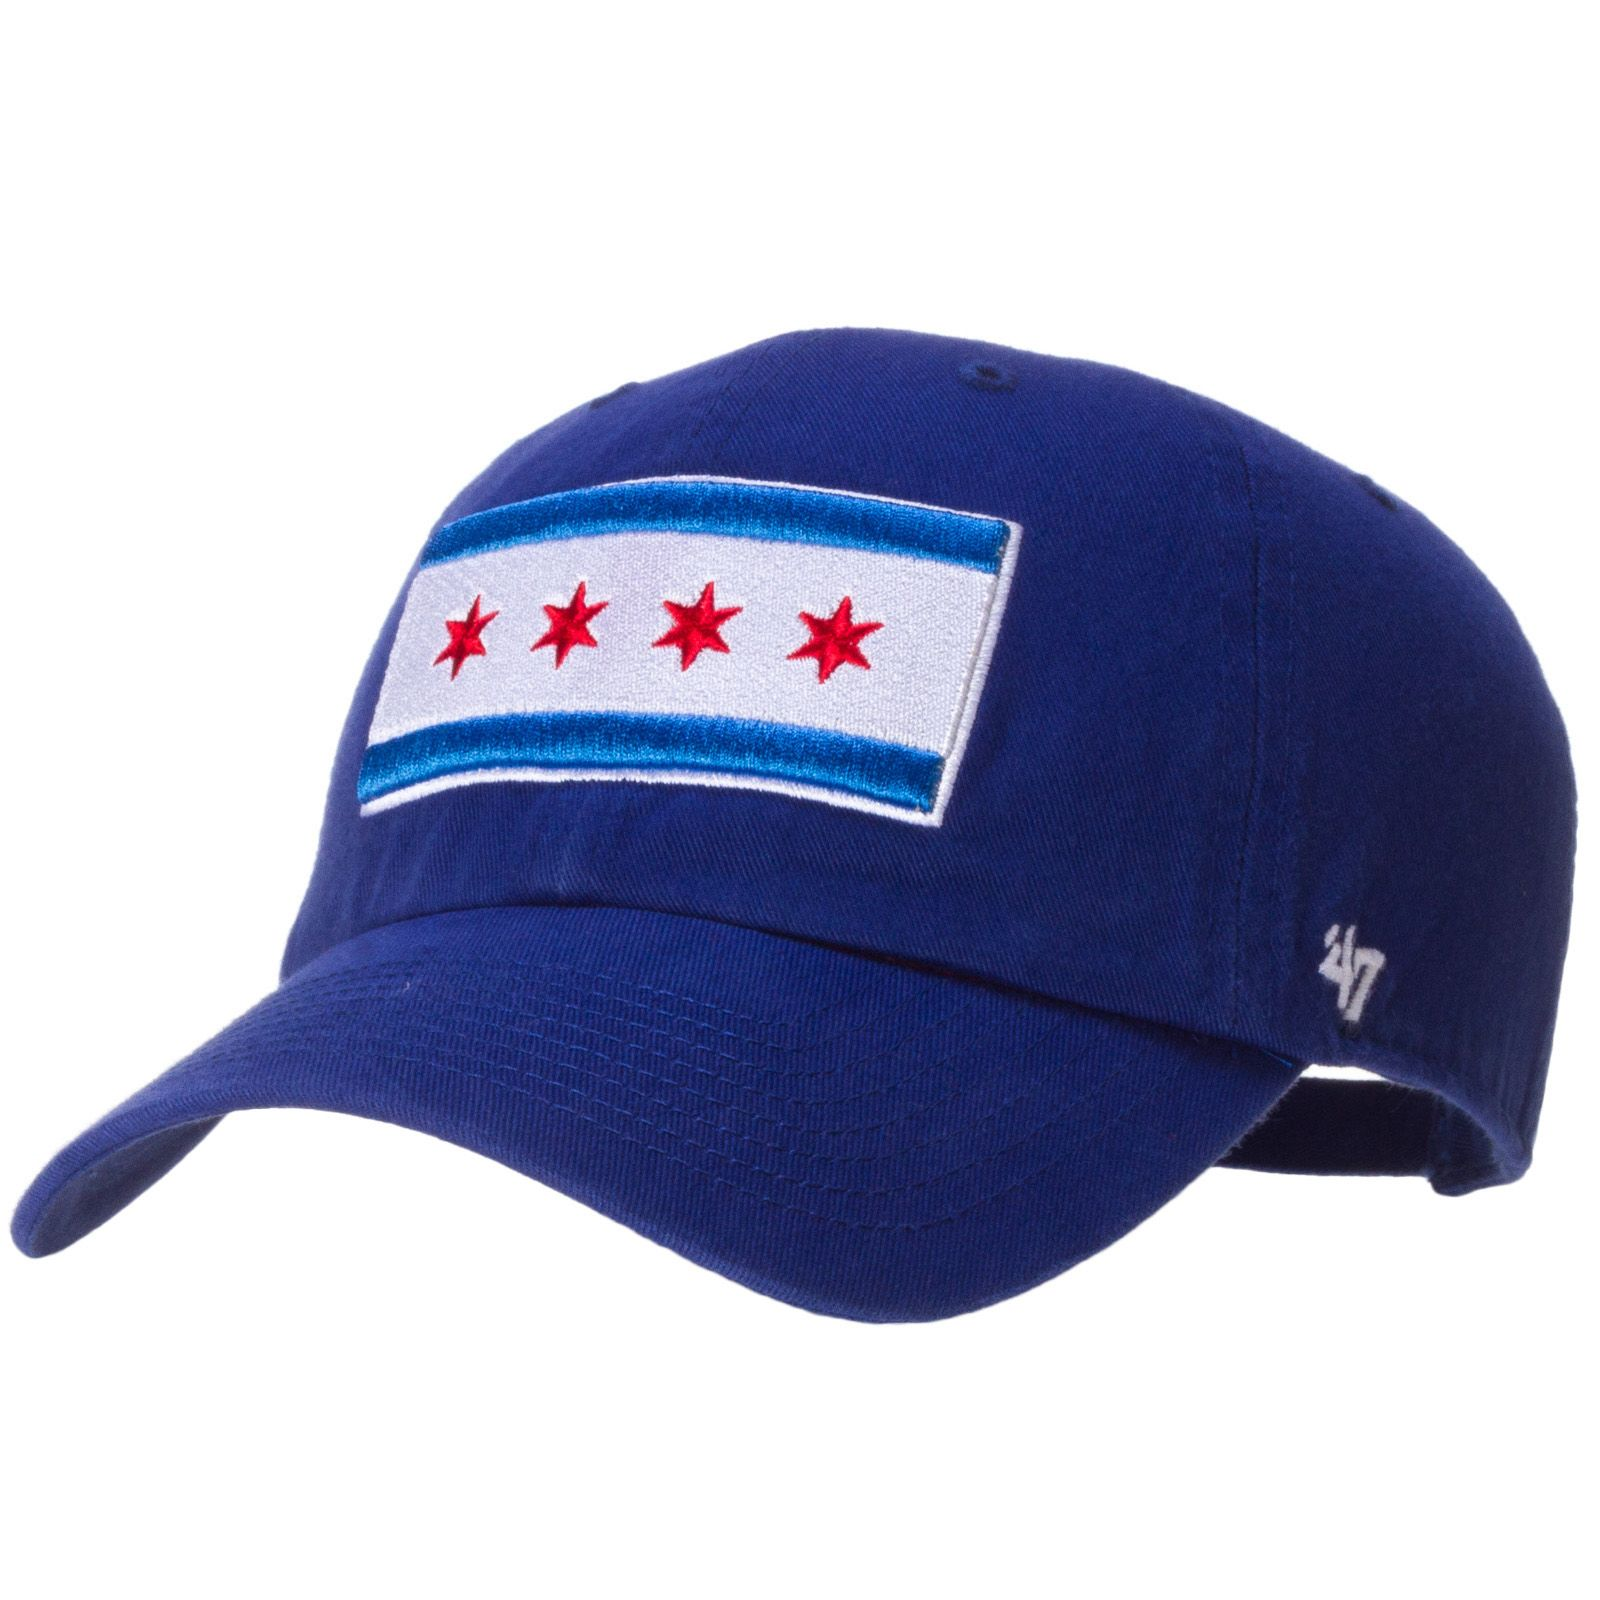 6c6f6acd075 Chicago Cubs Royal Chicago Flag Adjustable Hat with Crawl Bear Logo On Side  by 47 Brand  Chicago  ChicagoCubs  Cubs  Cubbies  ChicagoFlag